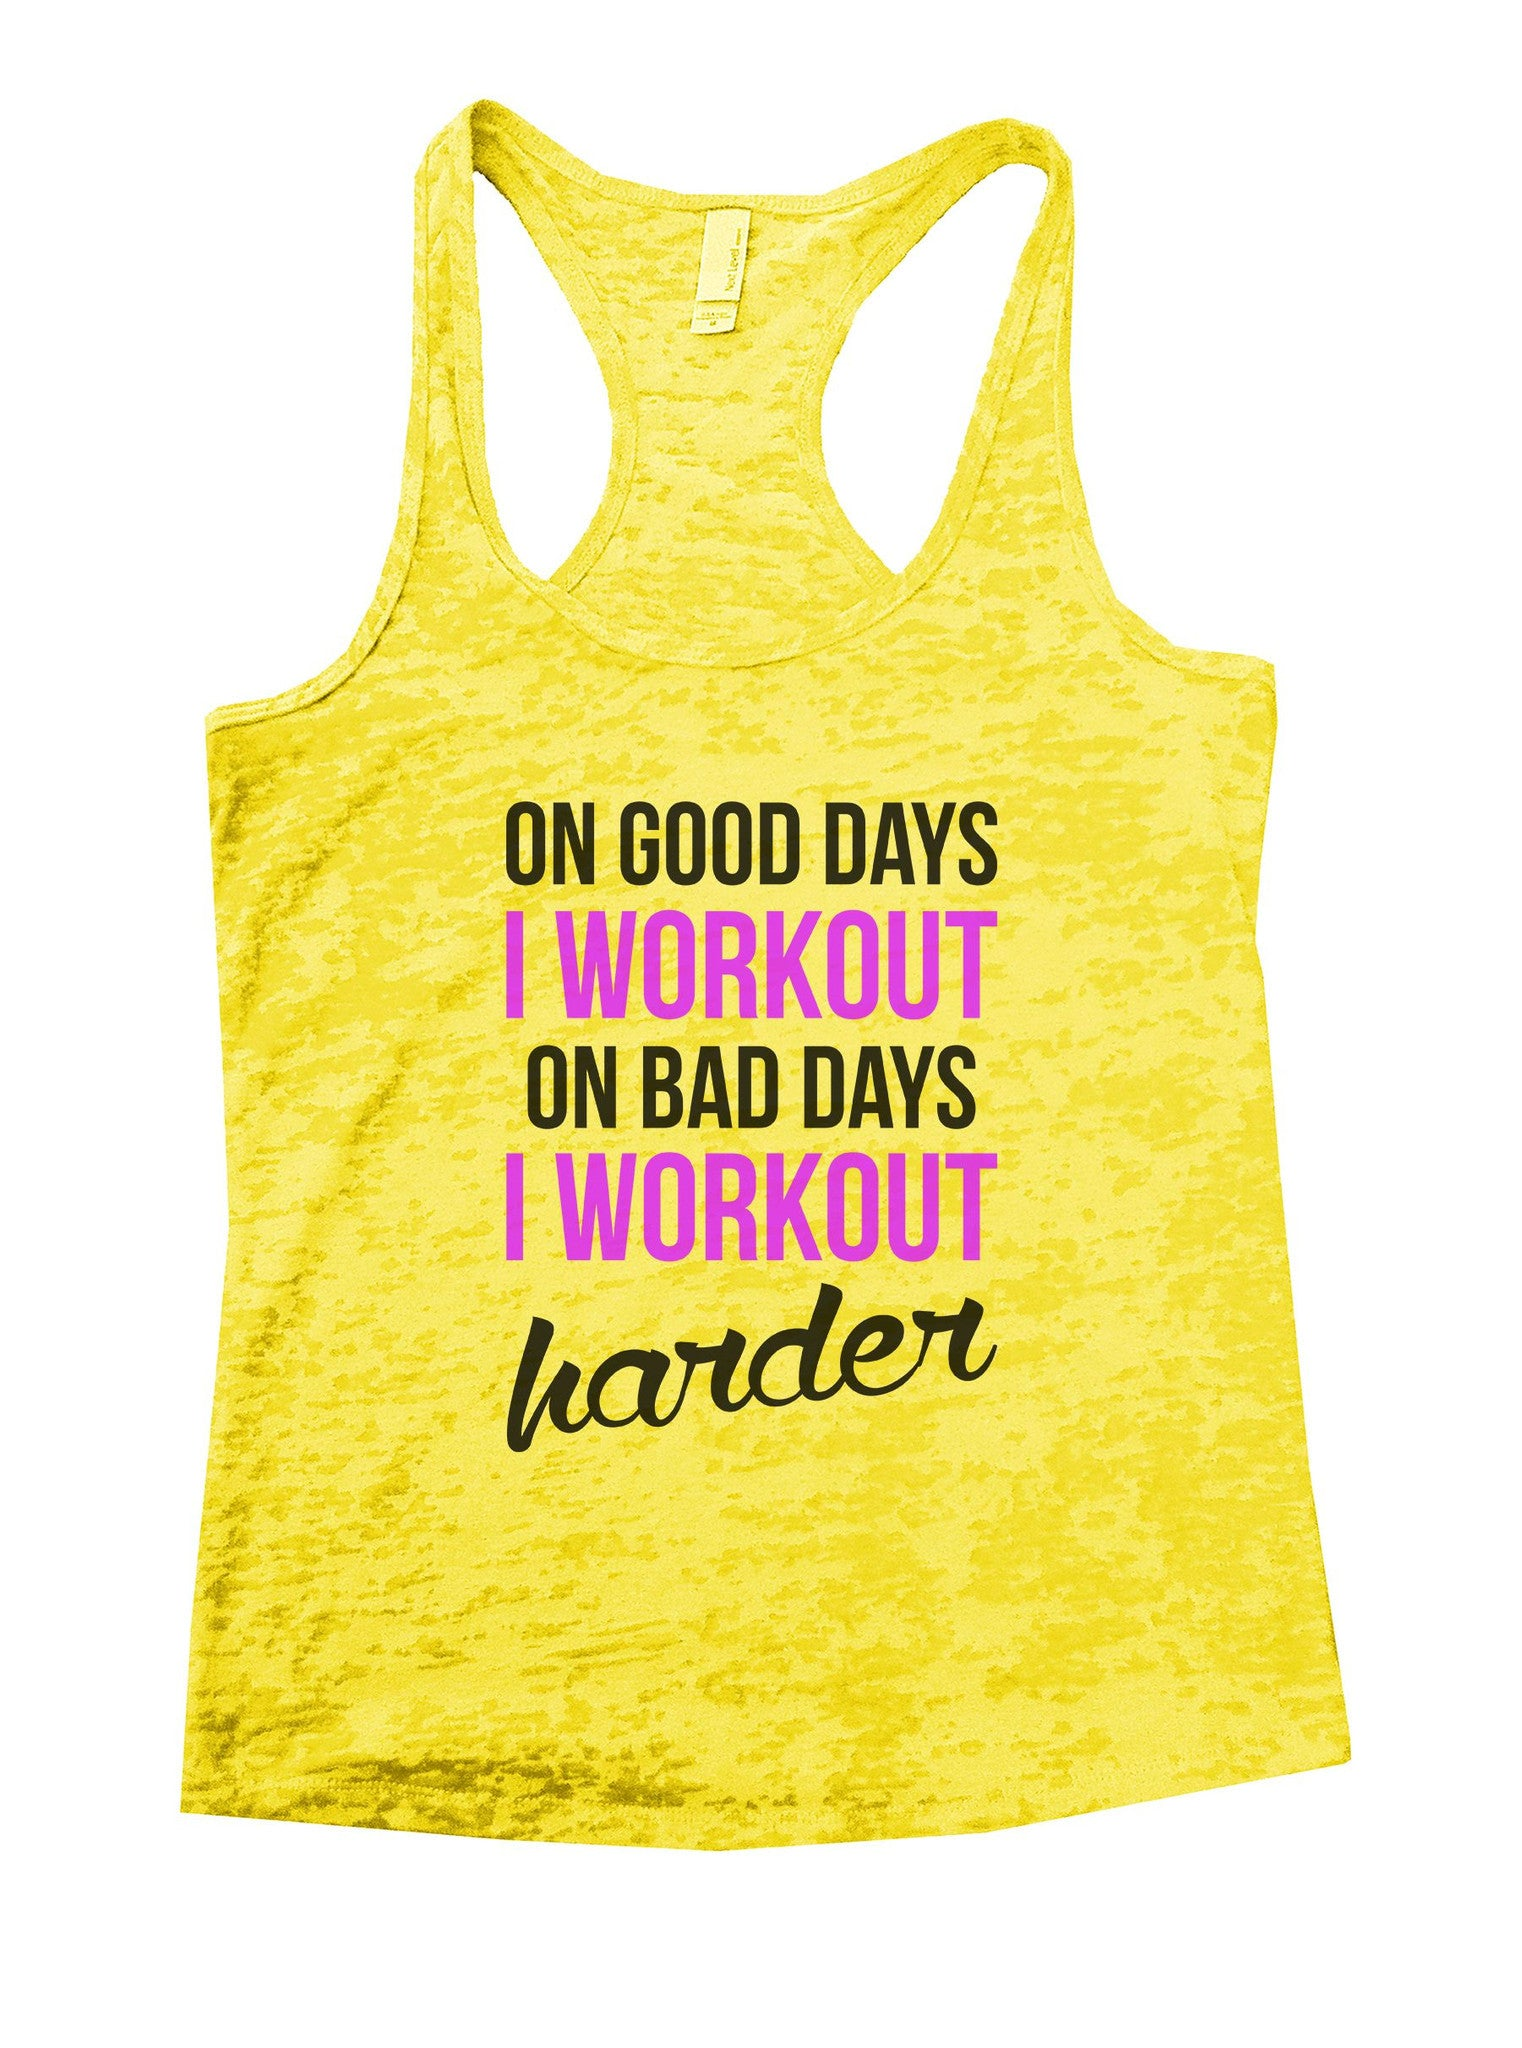 On Good Days I Workout On Bad Days I Workout Harder Burnout Tank Top By BurnoutTankTops.com - 850 - Funny Shirts Tank Tops Burnouts and Triblends  - 7